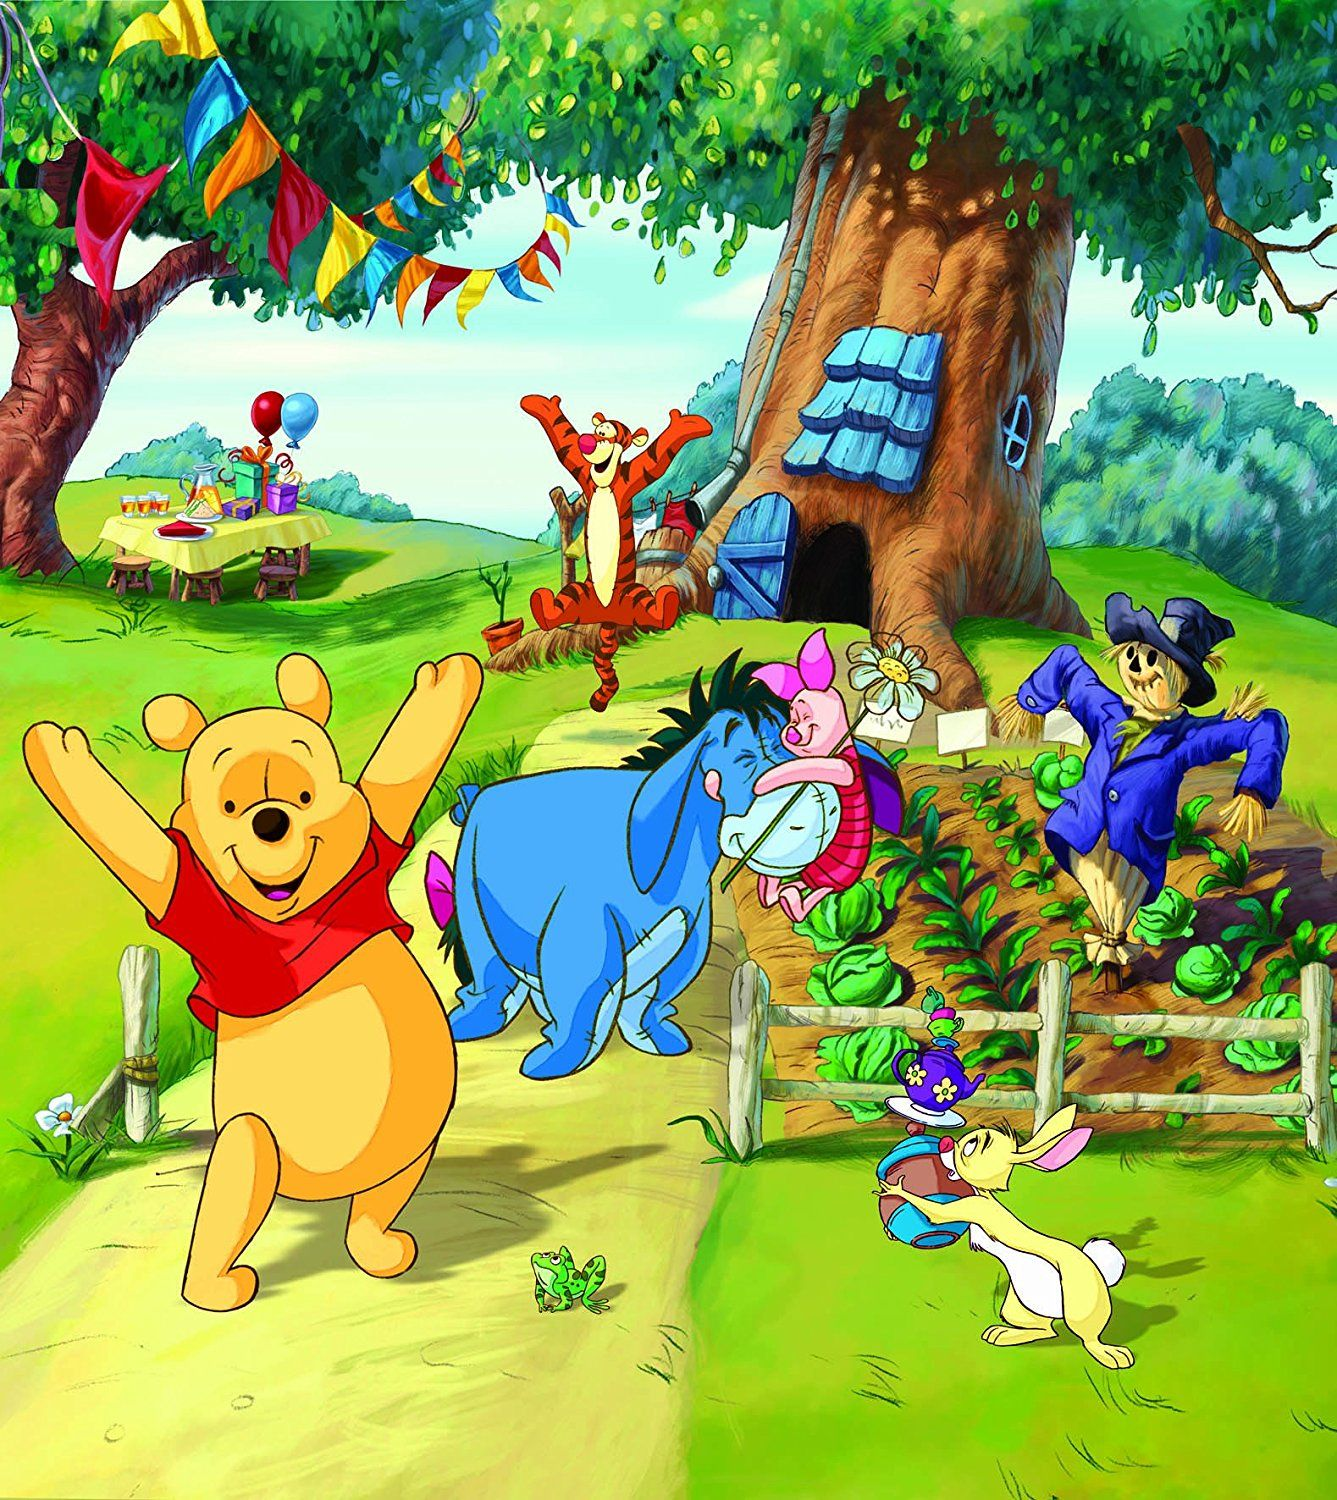 Details About 79x71inch Wall Mural Wallpaper For Kids Bedroom Disney Winnie Pooh Baby Room Art